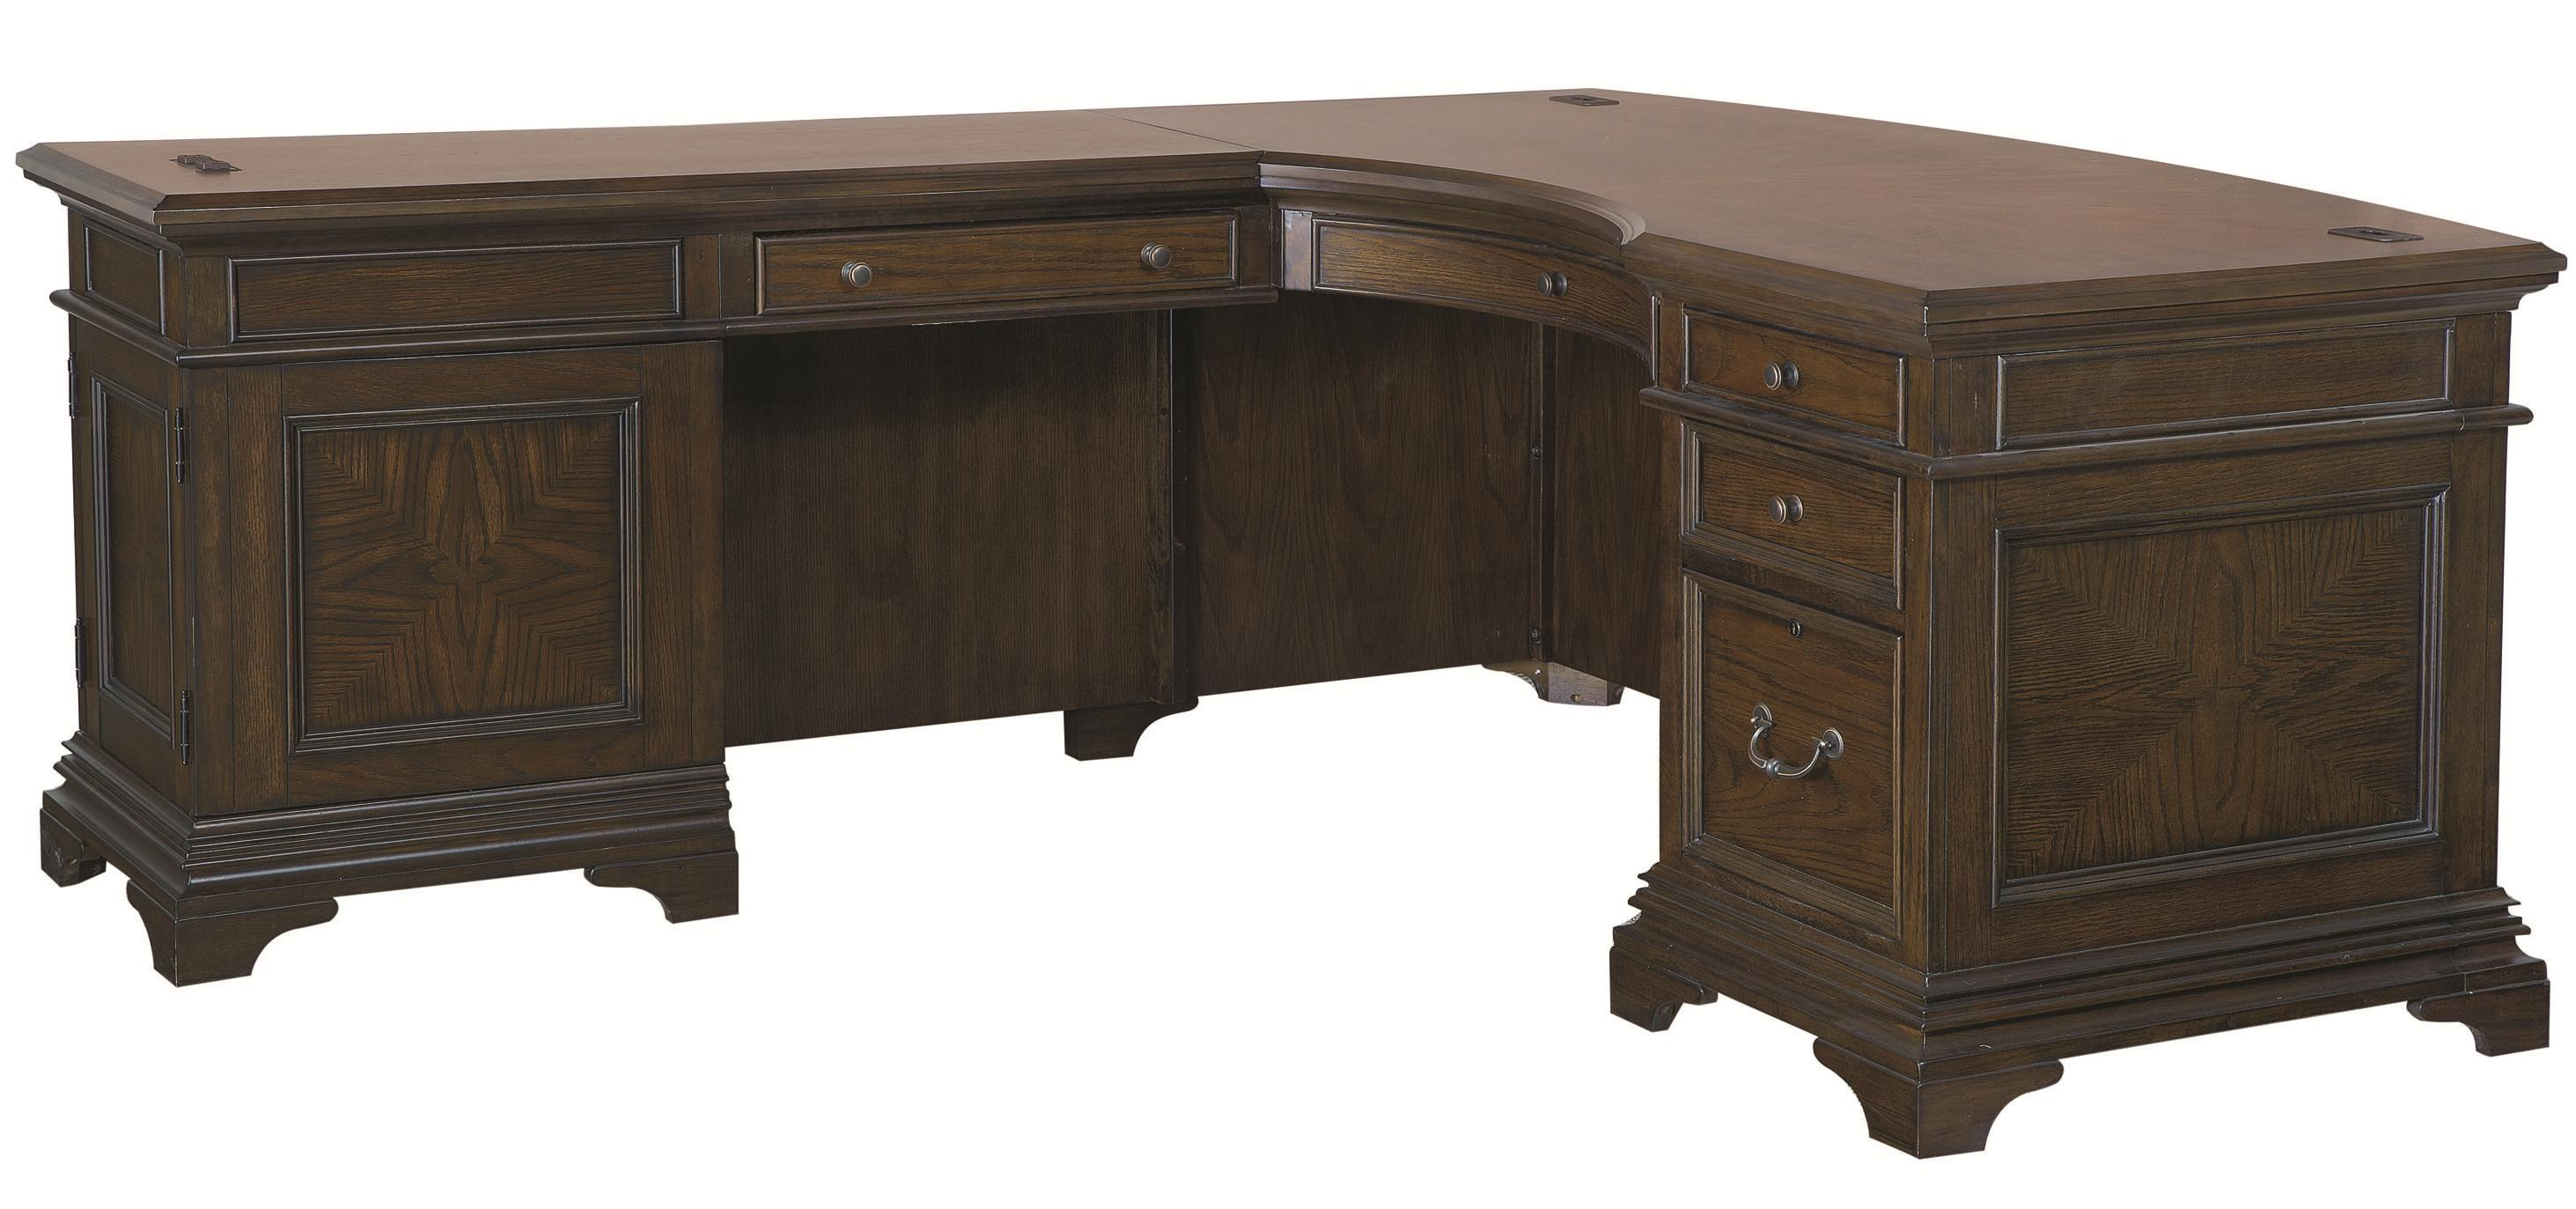 Highland Court Addams Addams Desk and Reversible Return - Item Number: I24-307+8